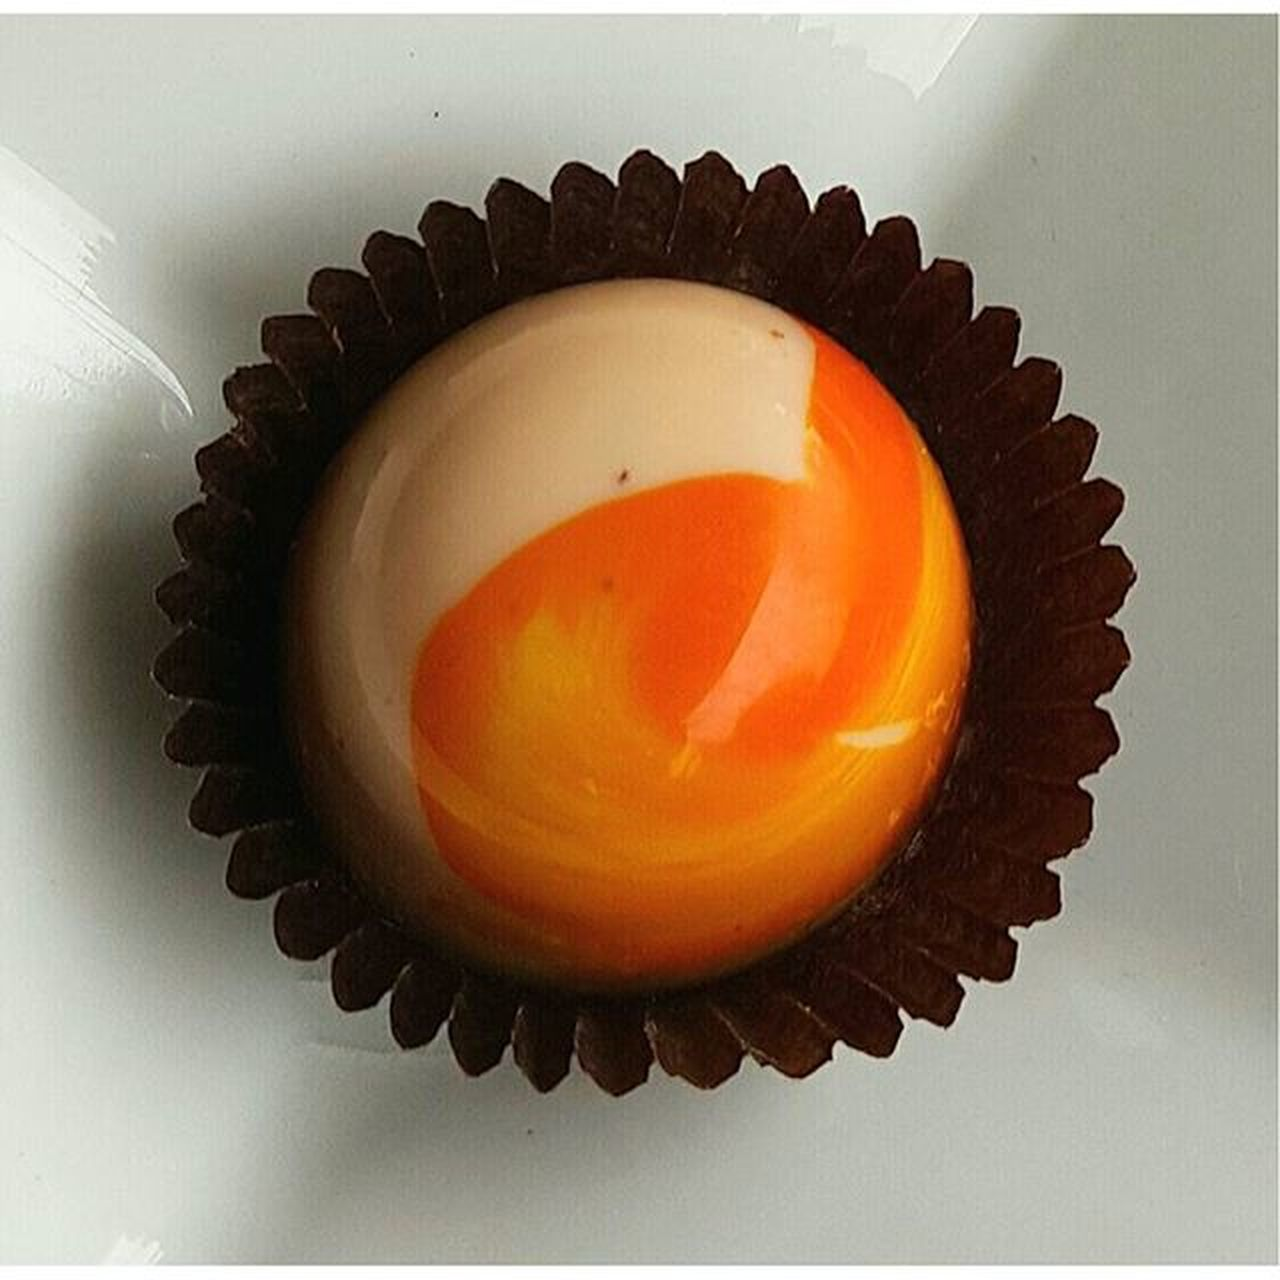 Instasize Creamsicletruffle Wineloveschocolate Washingtonva Chocolate Truffle Creamsicle Truffles Truffleart